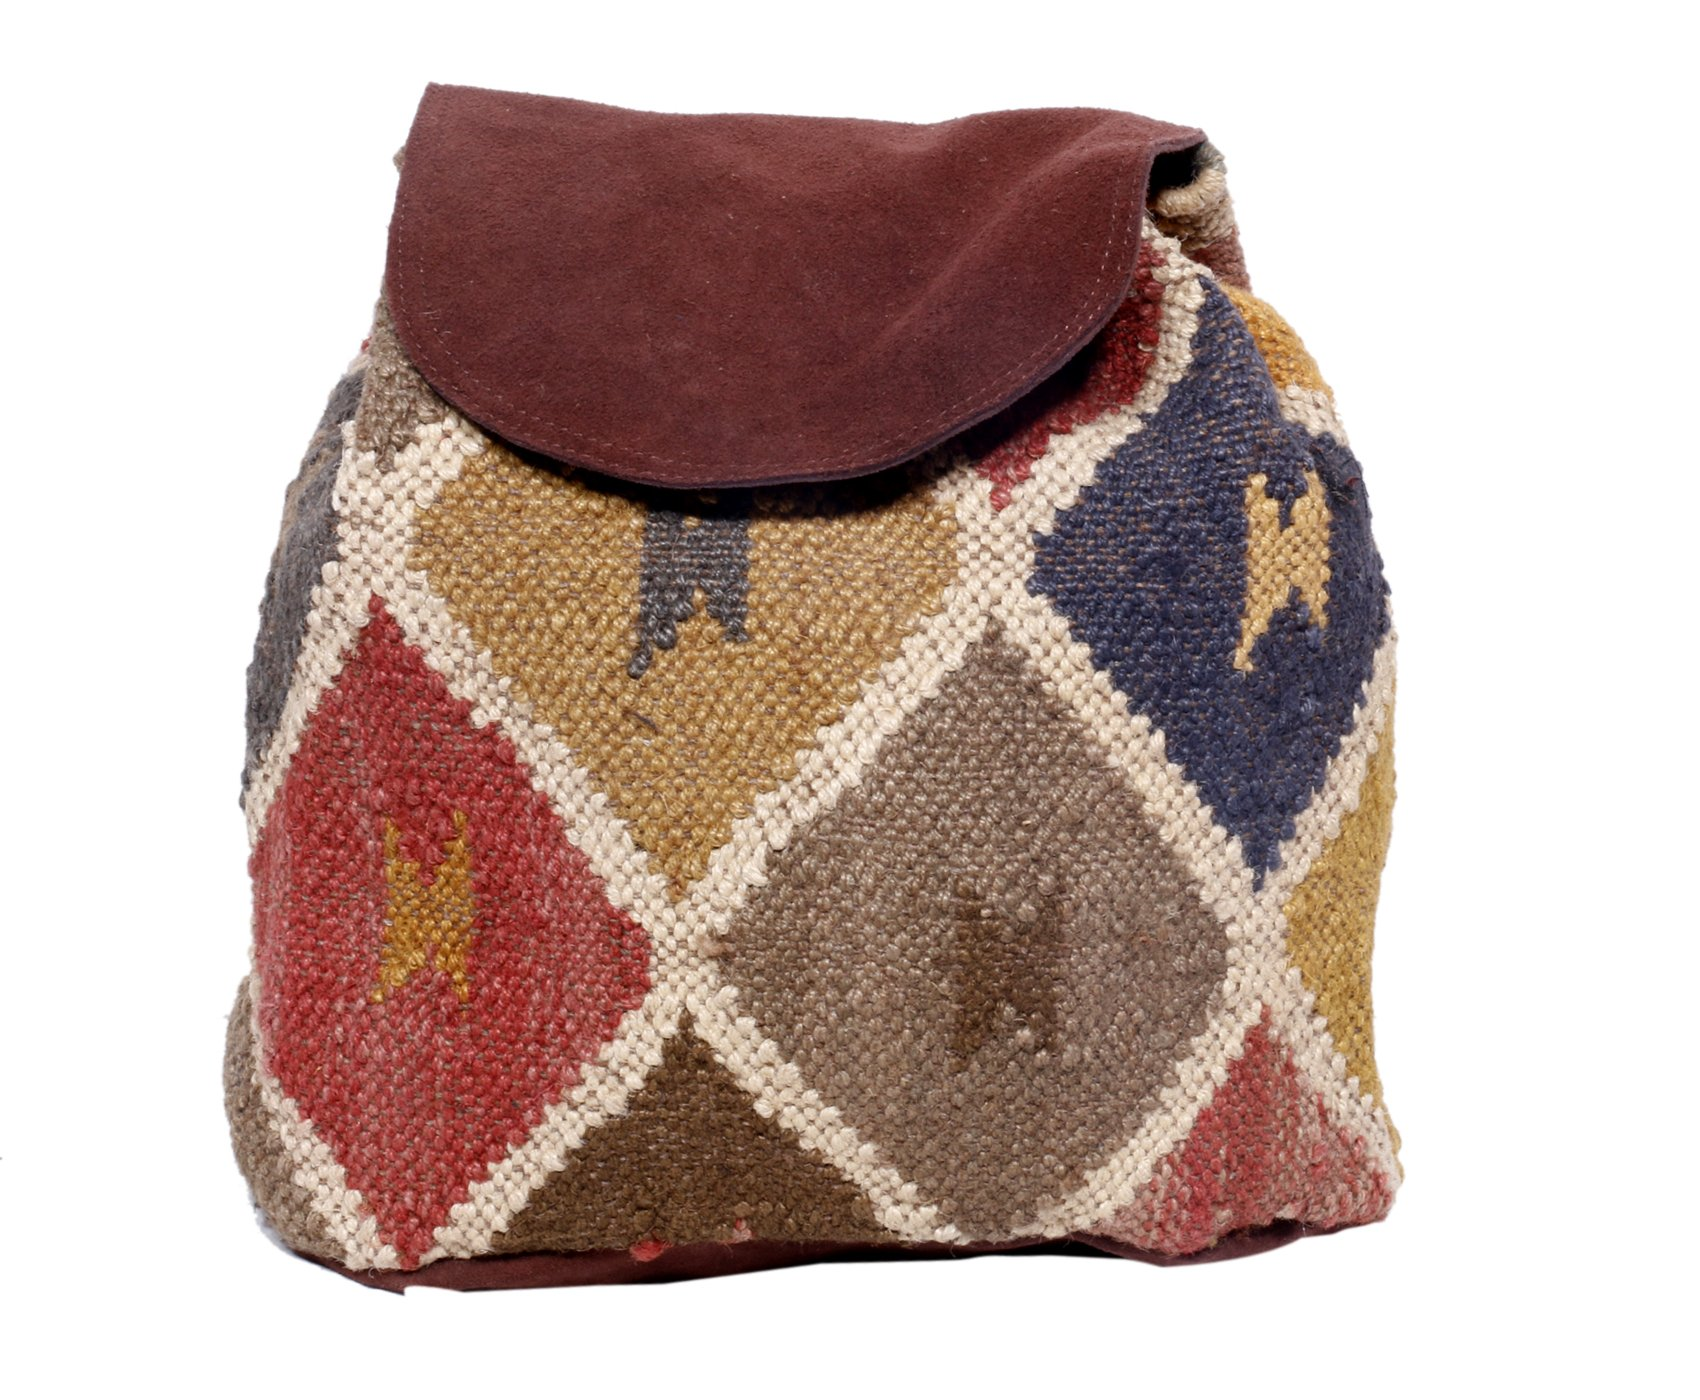 Indistar Women's Vintage Handmade Ethnic Kilim and Leather Back Pack Bag by Indistar (Image #3)